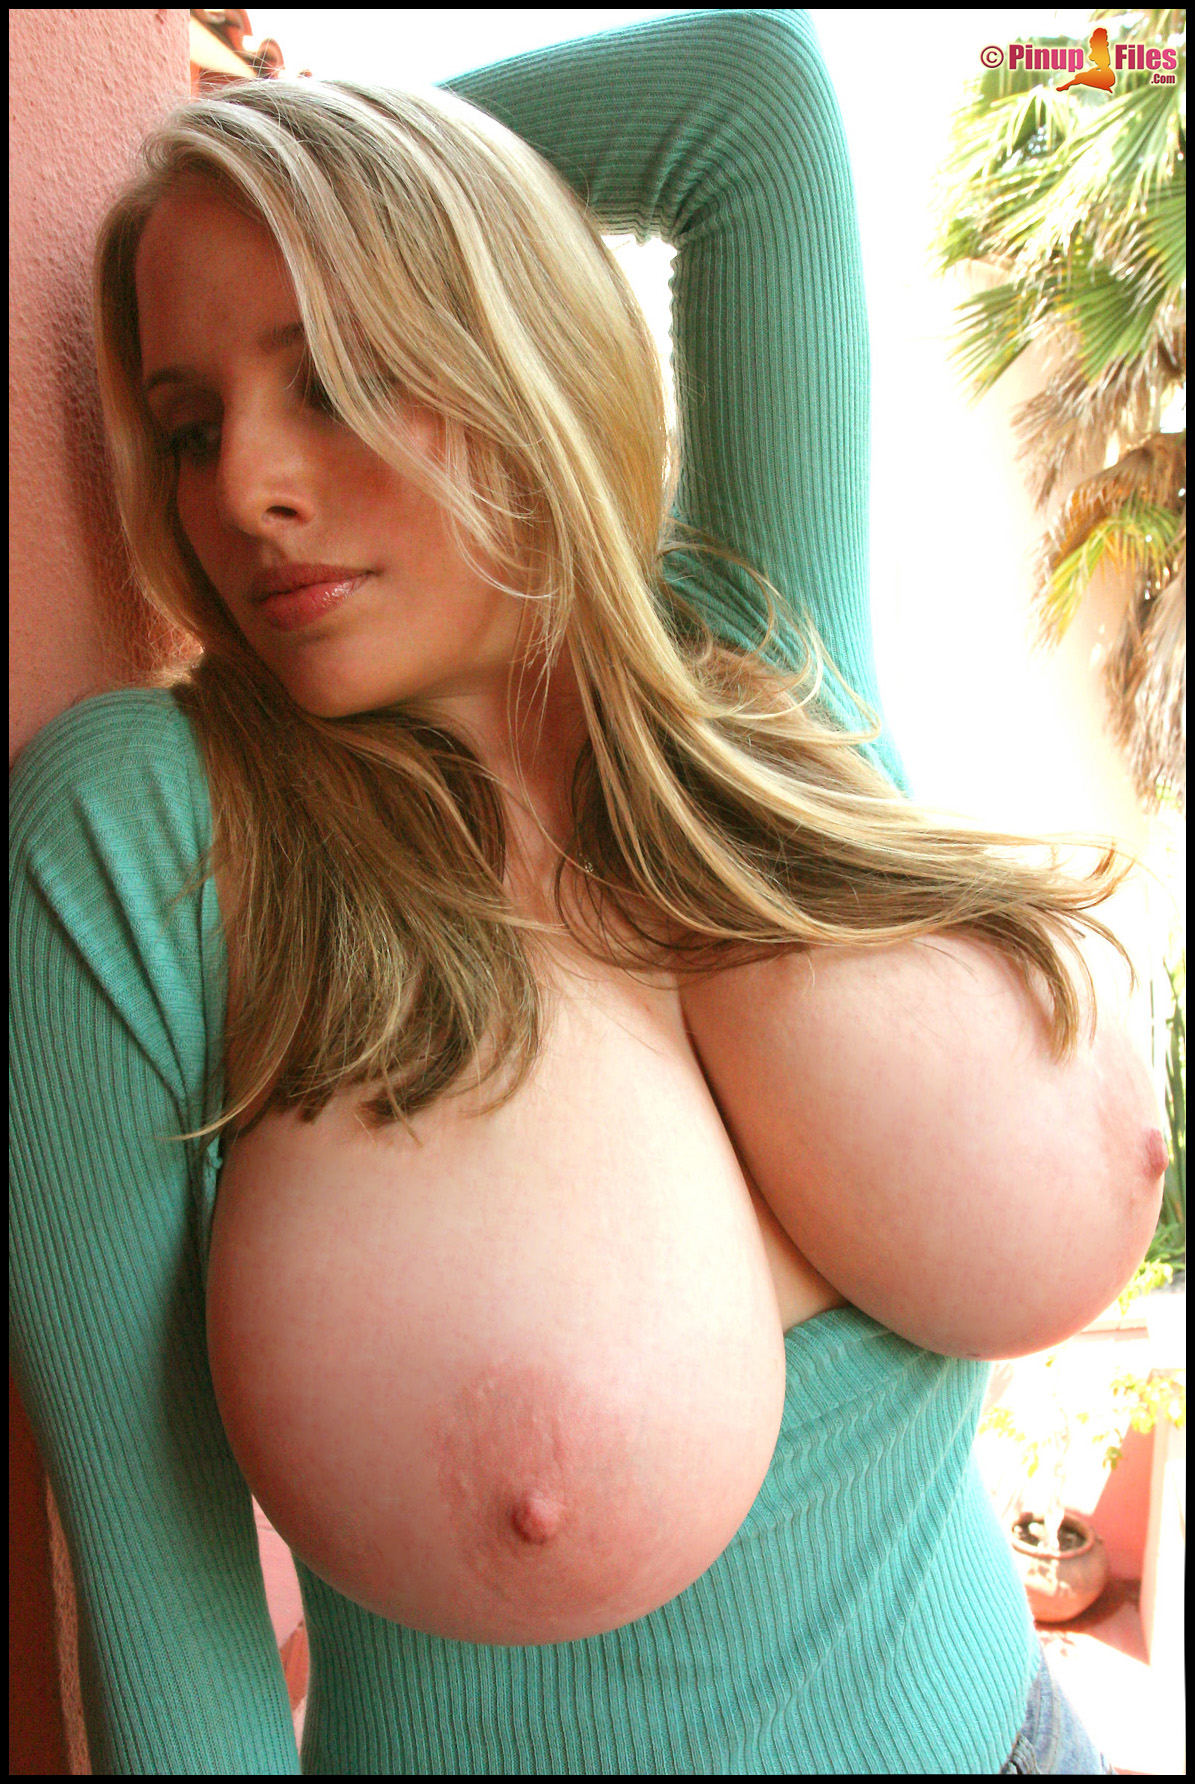 green sweater big boobs